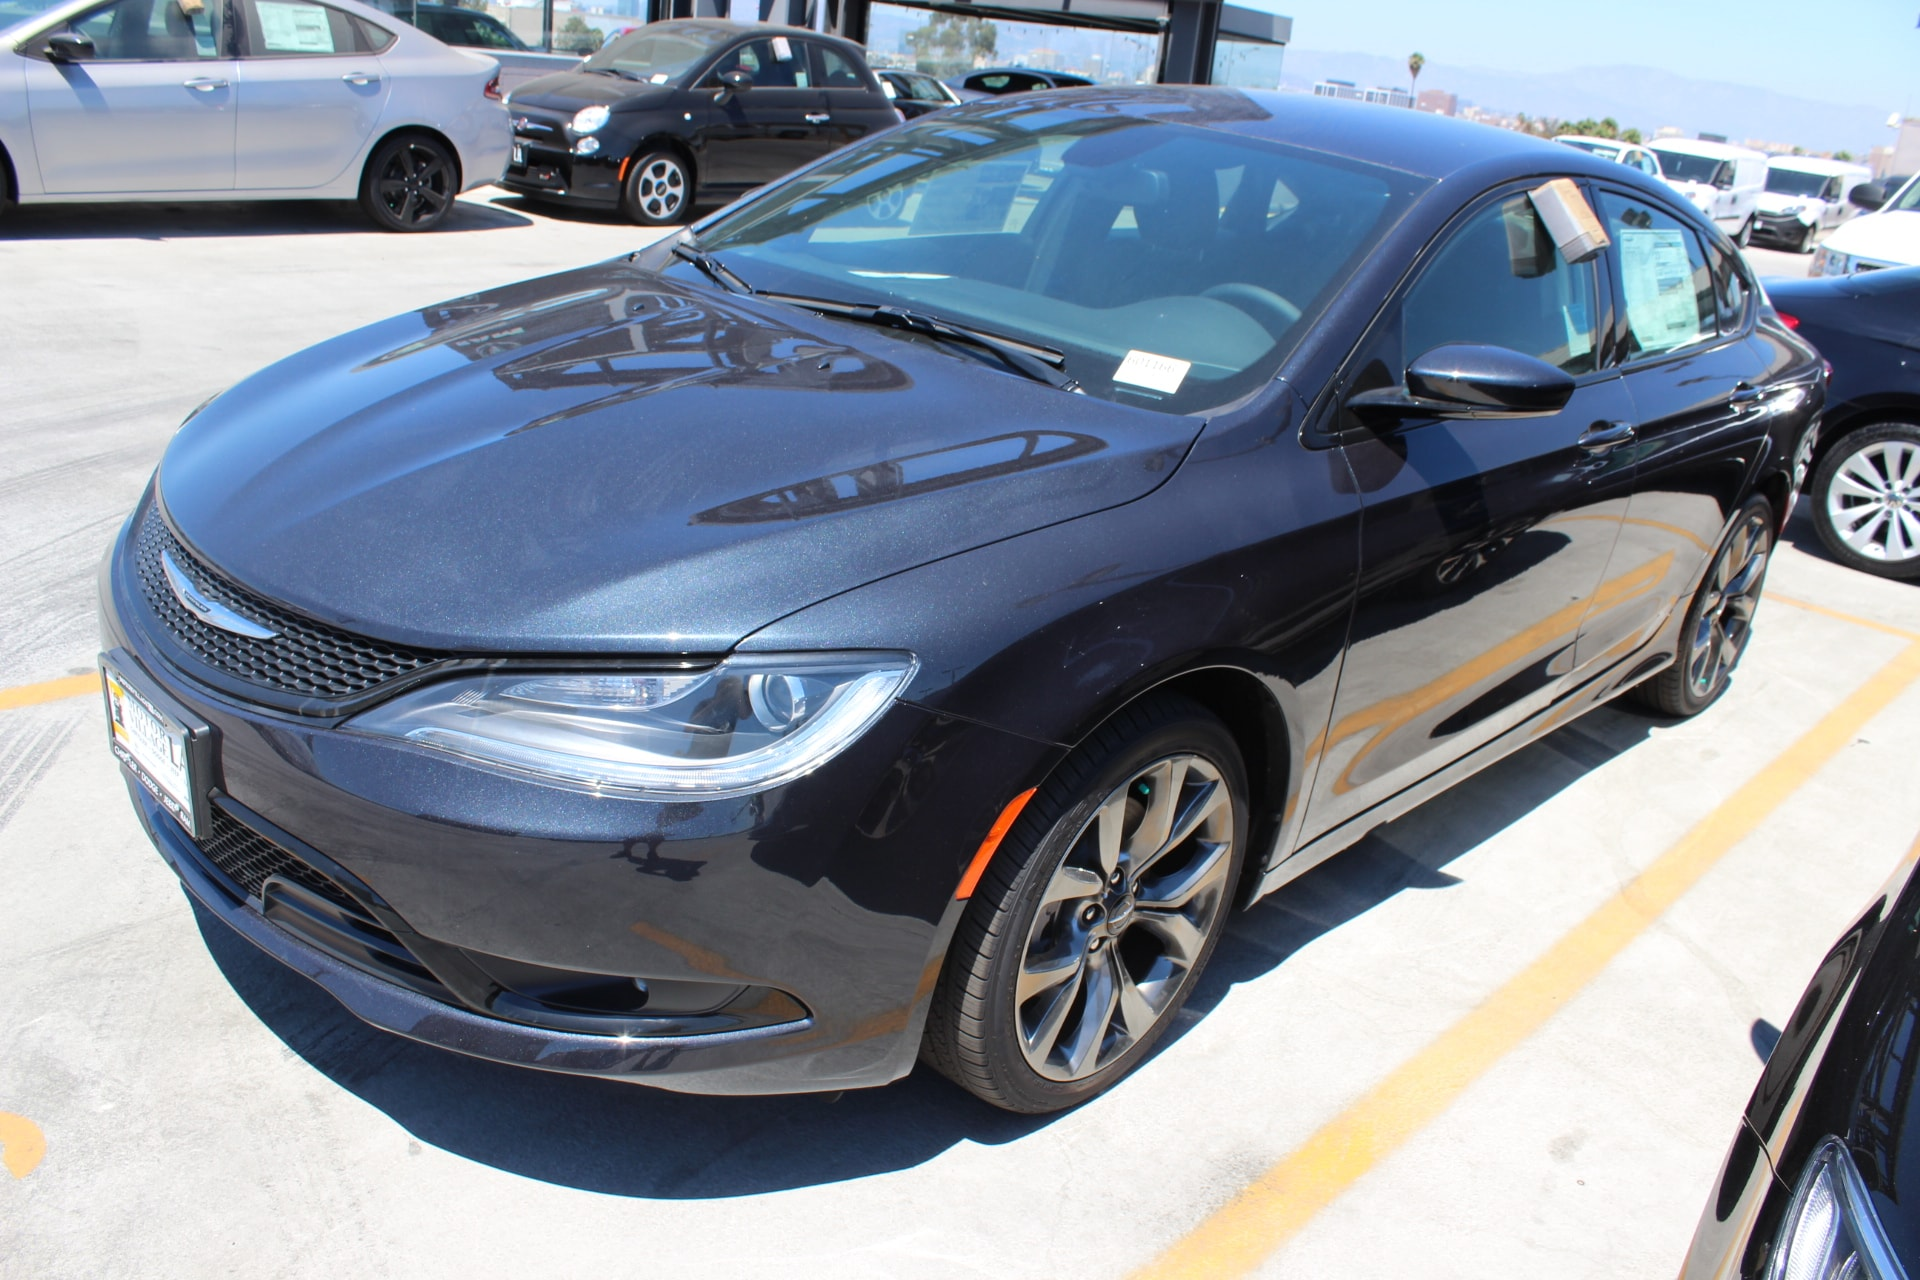 2016 Chrysler 200 S  1 Year Trial 3251 Final Drive Ratio 5-Year SiriusXM Traffic Service 5-Ye